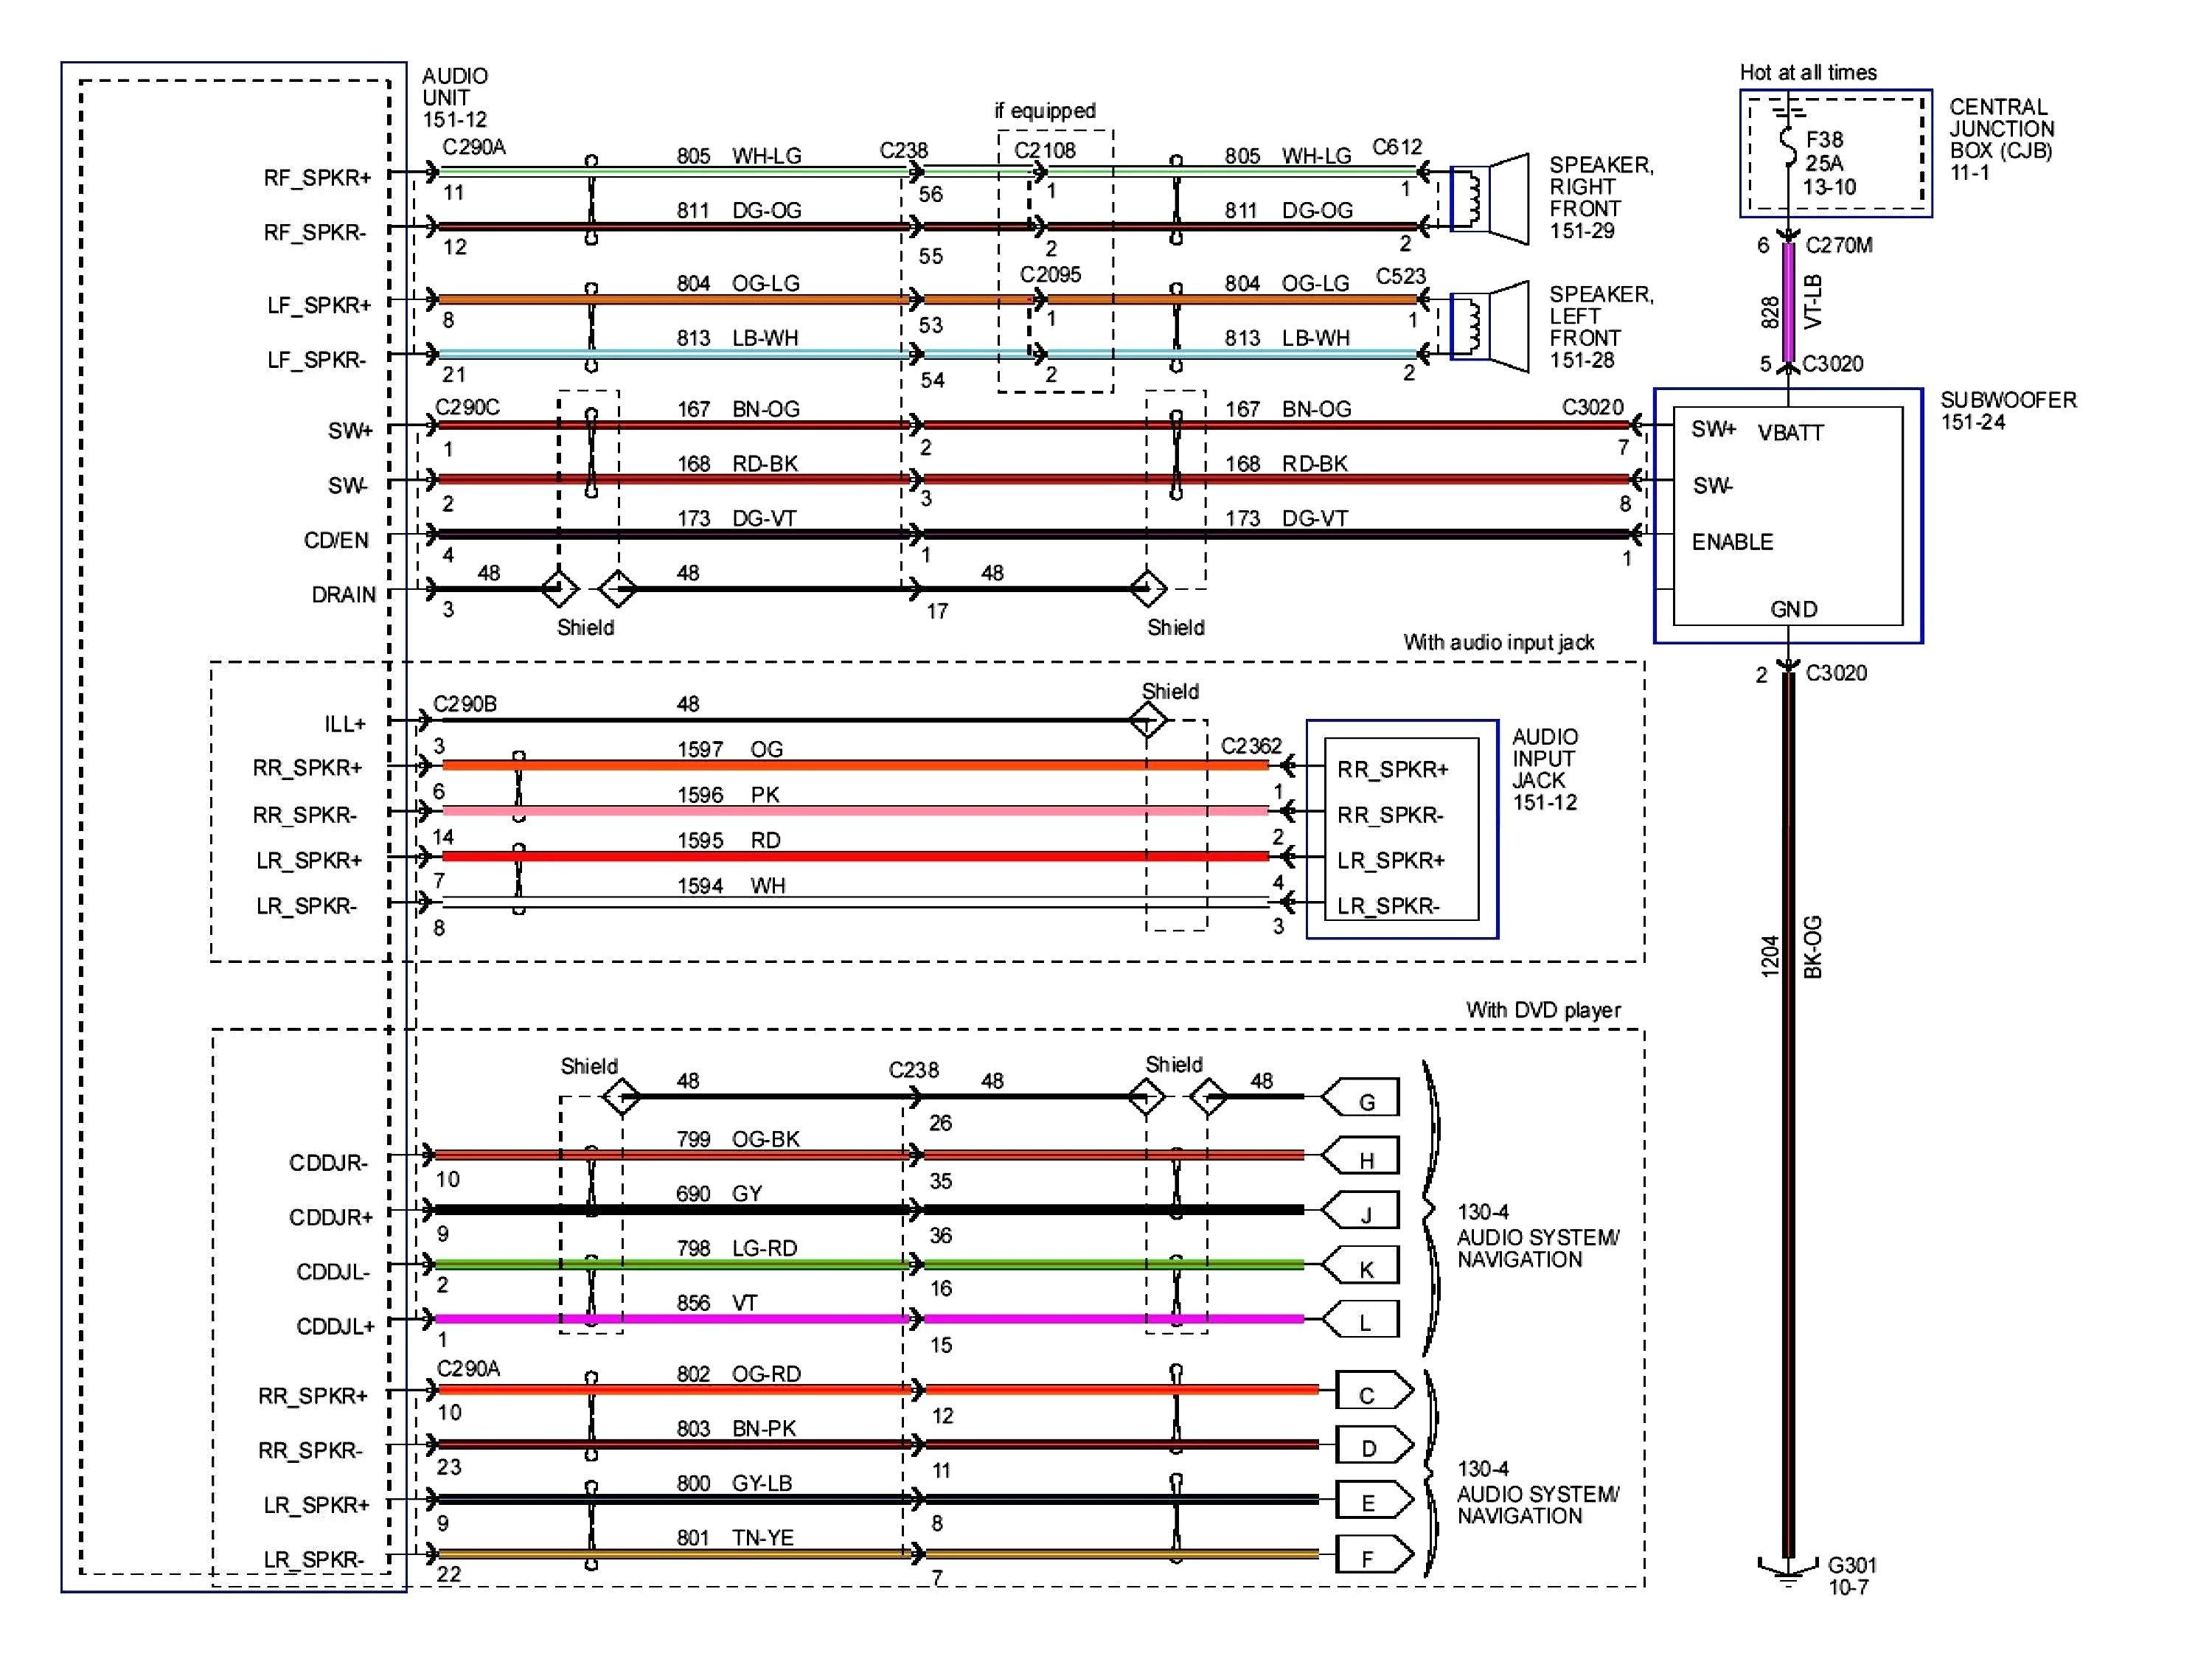 [DIAGRAM_38IU]  New 2004 Dodge Ram 1500 Infinity Wiring Diagram #diagram #diagramsample  #diagramtemplate #wiringdiagr… | Electrical wiring diagram, Trailer wiring  diagram, Fuse box | 2004 Radio Wiring Dodge 1500 Infinity Images |  | Pinterest